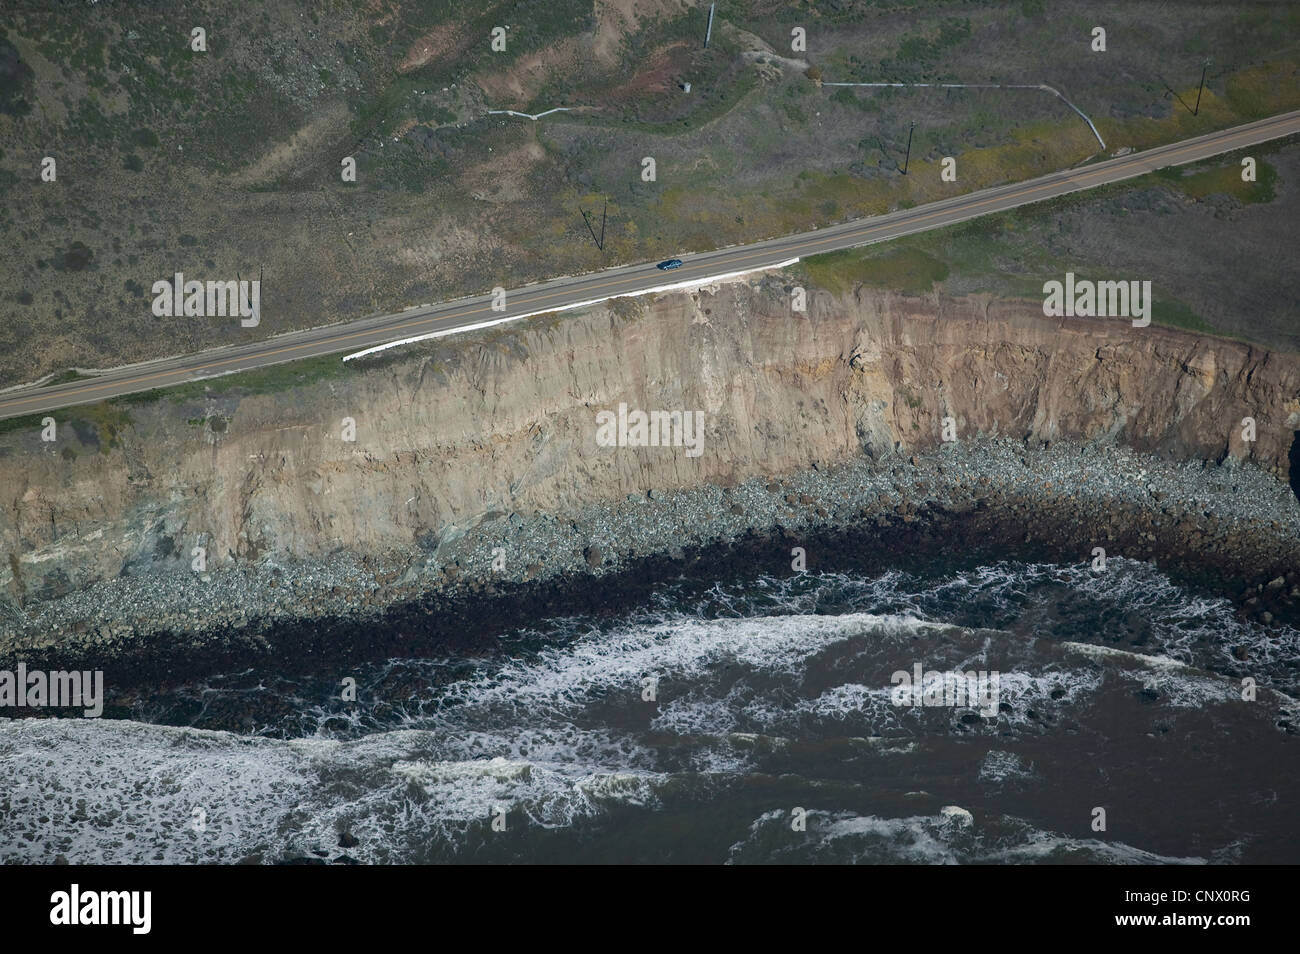 aerial photograph erosion highway one central coast California - Stock Image